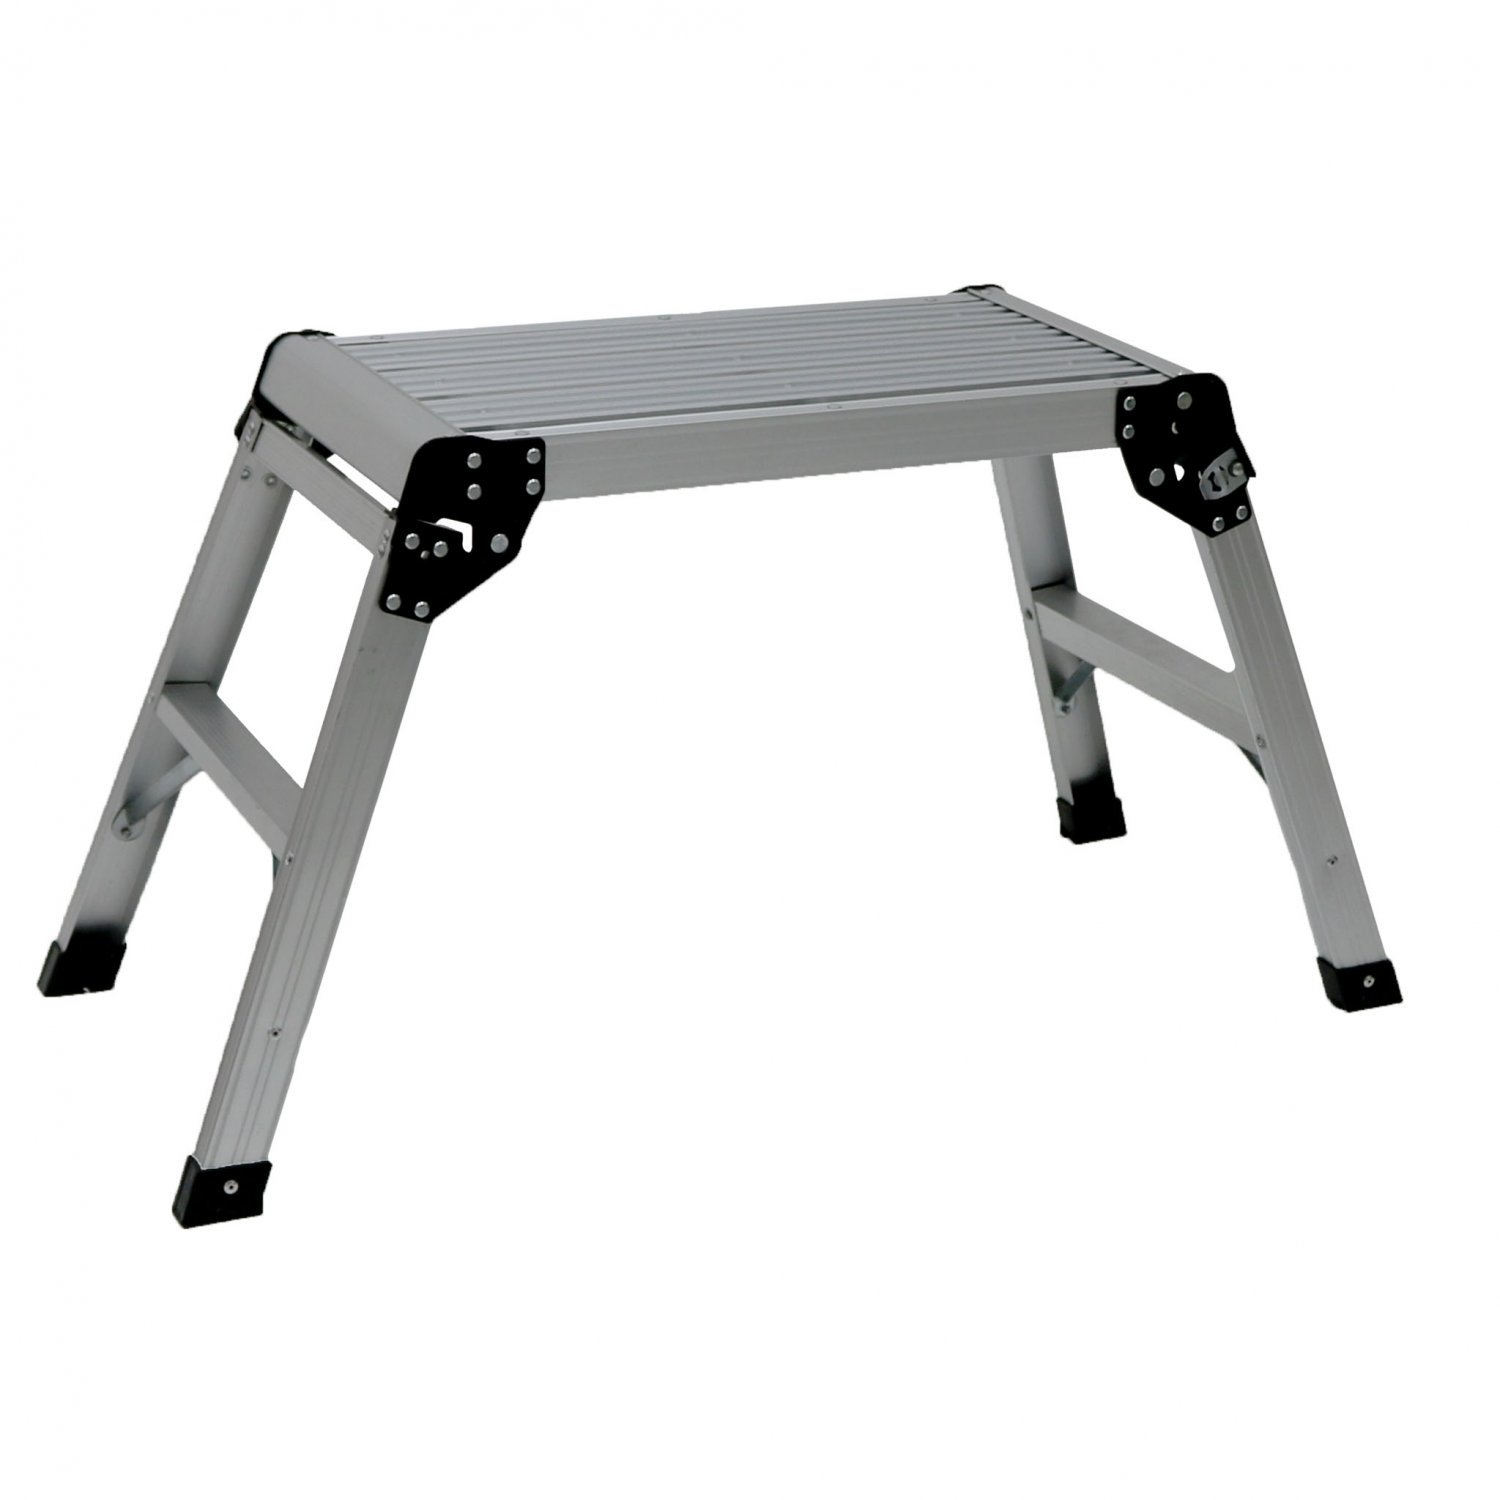 150kg Folding Aluminium Work Platform Step Up Bench Ladder EN131